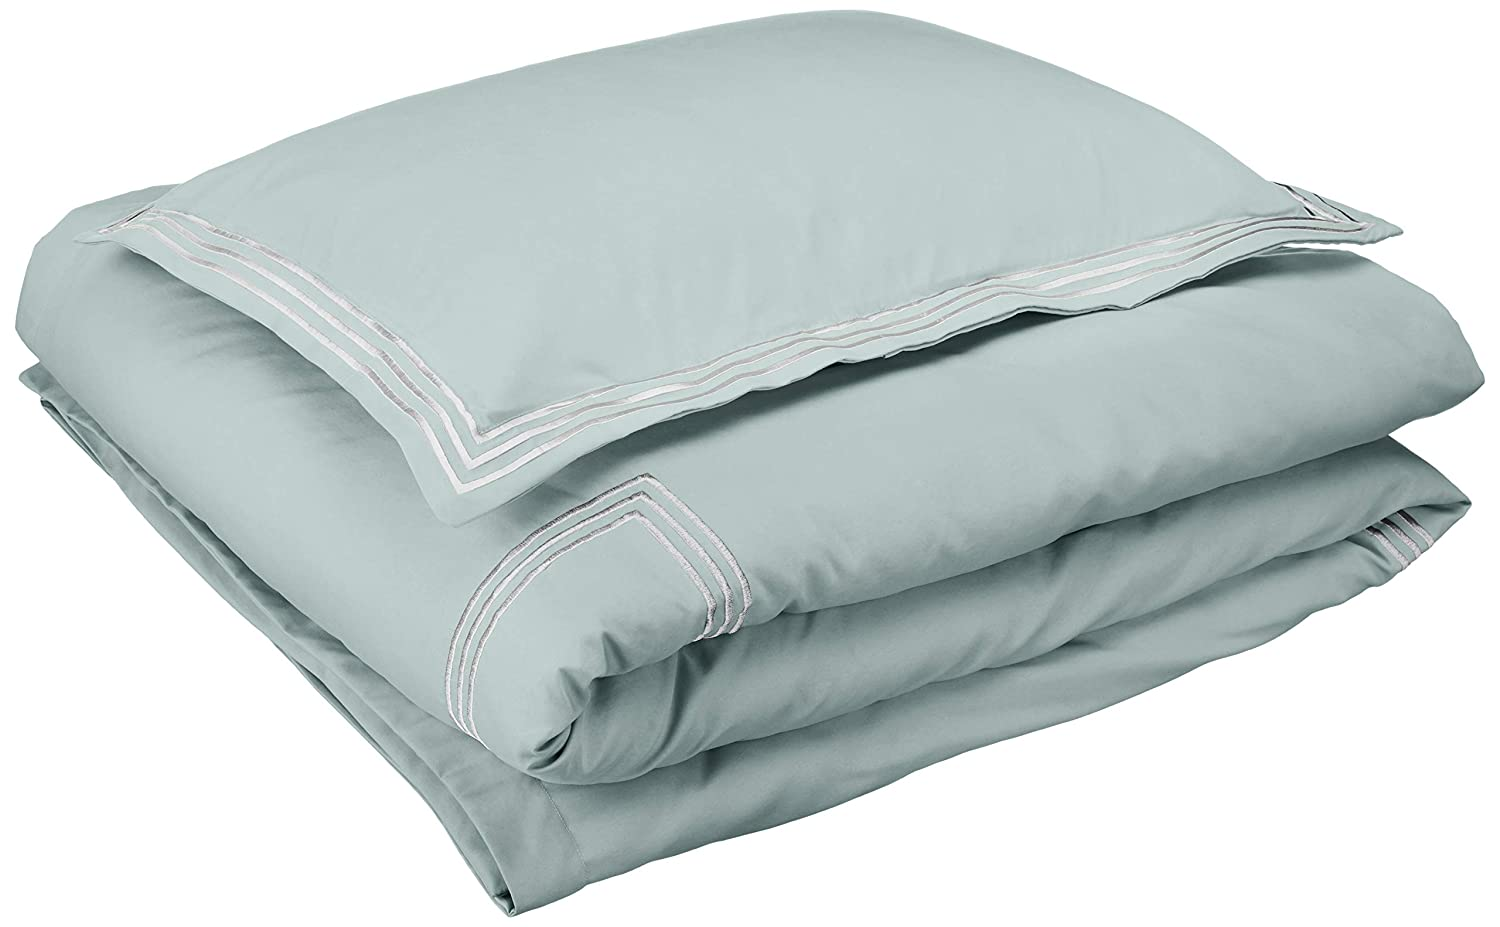 AmazonBasics Premium Embroidered Hotel Stitch Duvet Cover Set - Twin or Twin XL, Seafoam Green